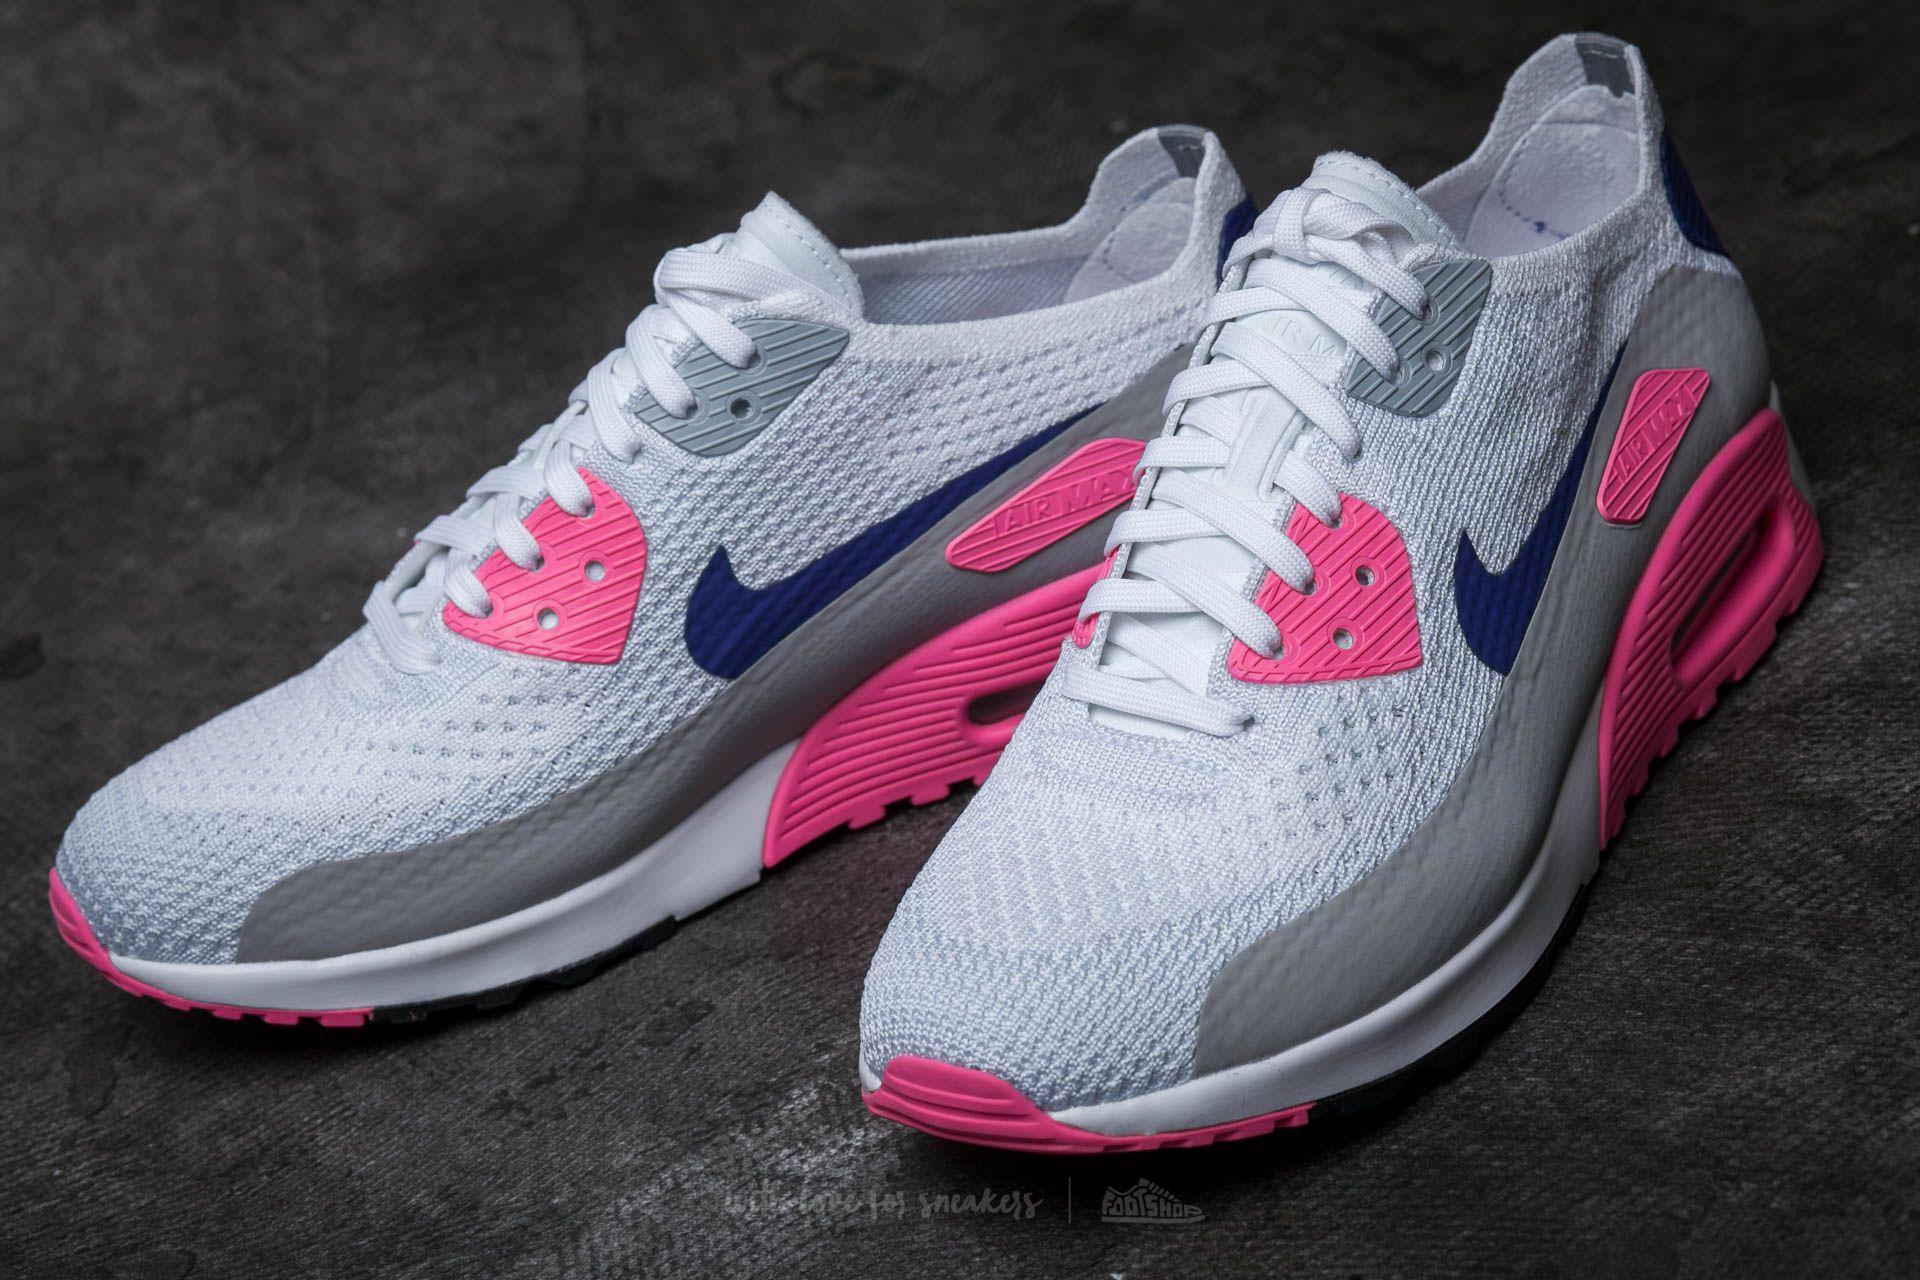 1ba05af093 Gallery. Previously sold at: Footshop · Women's Nike Air Max 90 Women's Nike  Flyknit